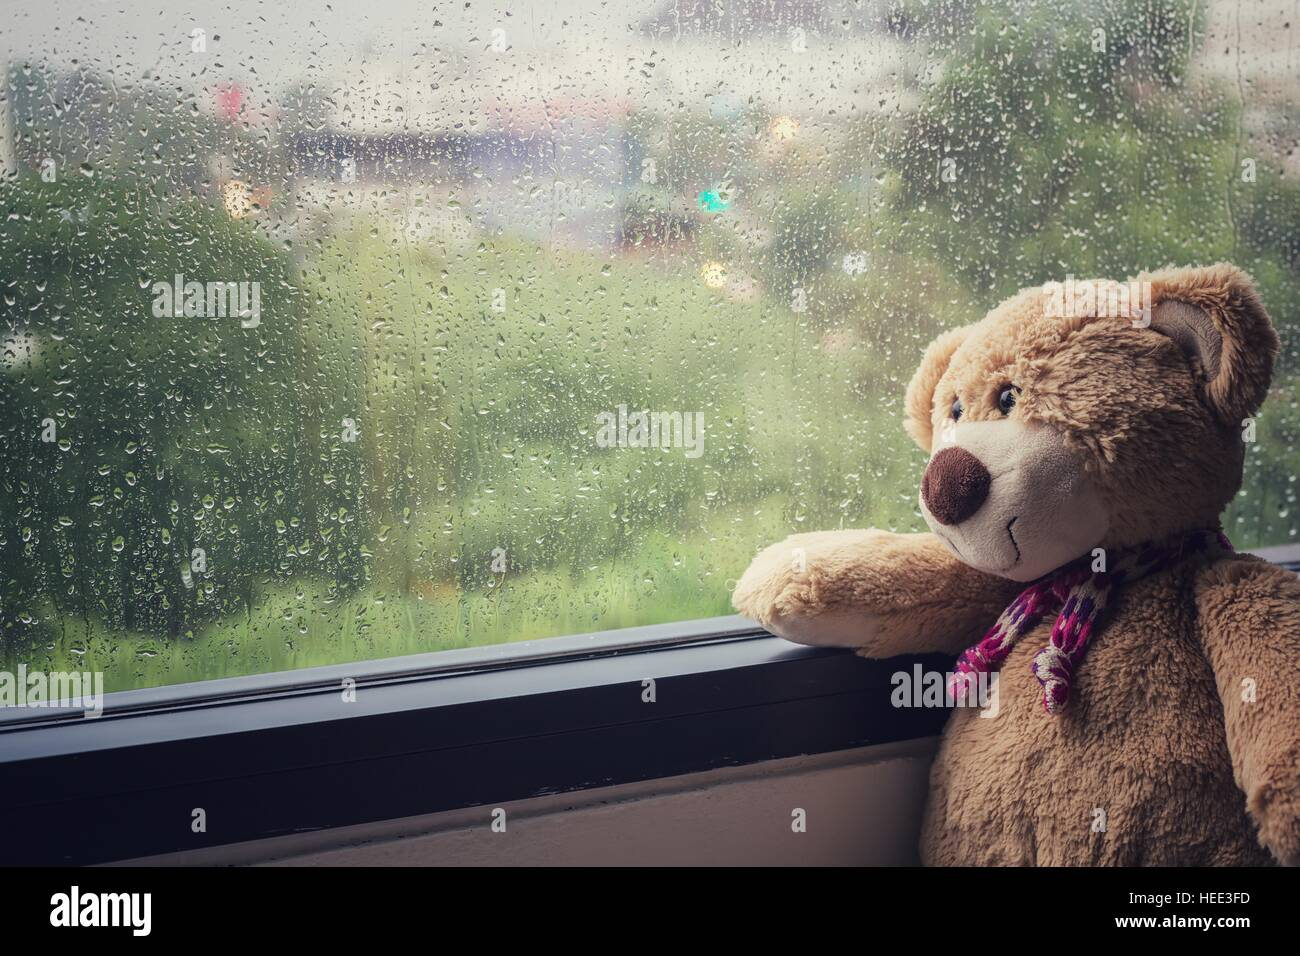 wet teddy bear stockfotos wet teddy bear bilder seite 3 alamy. Black Bedroom Furniture Sets. Home Design Ideas